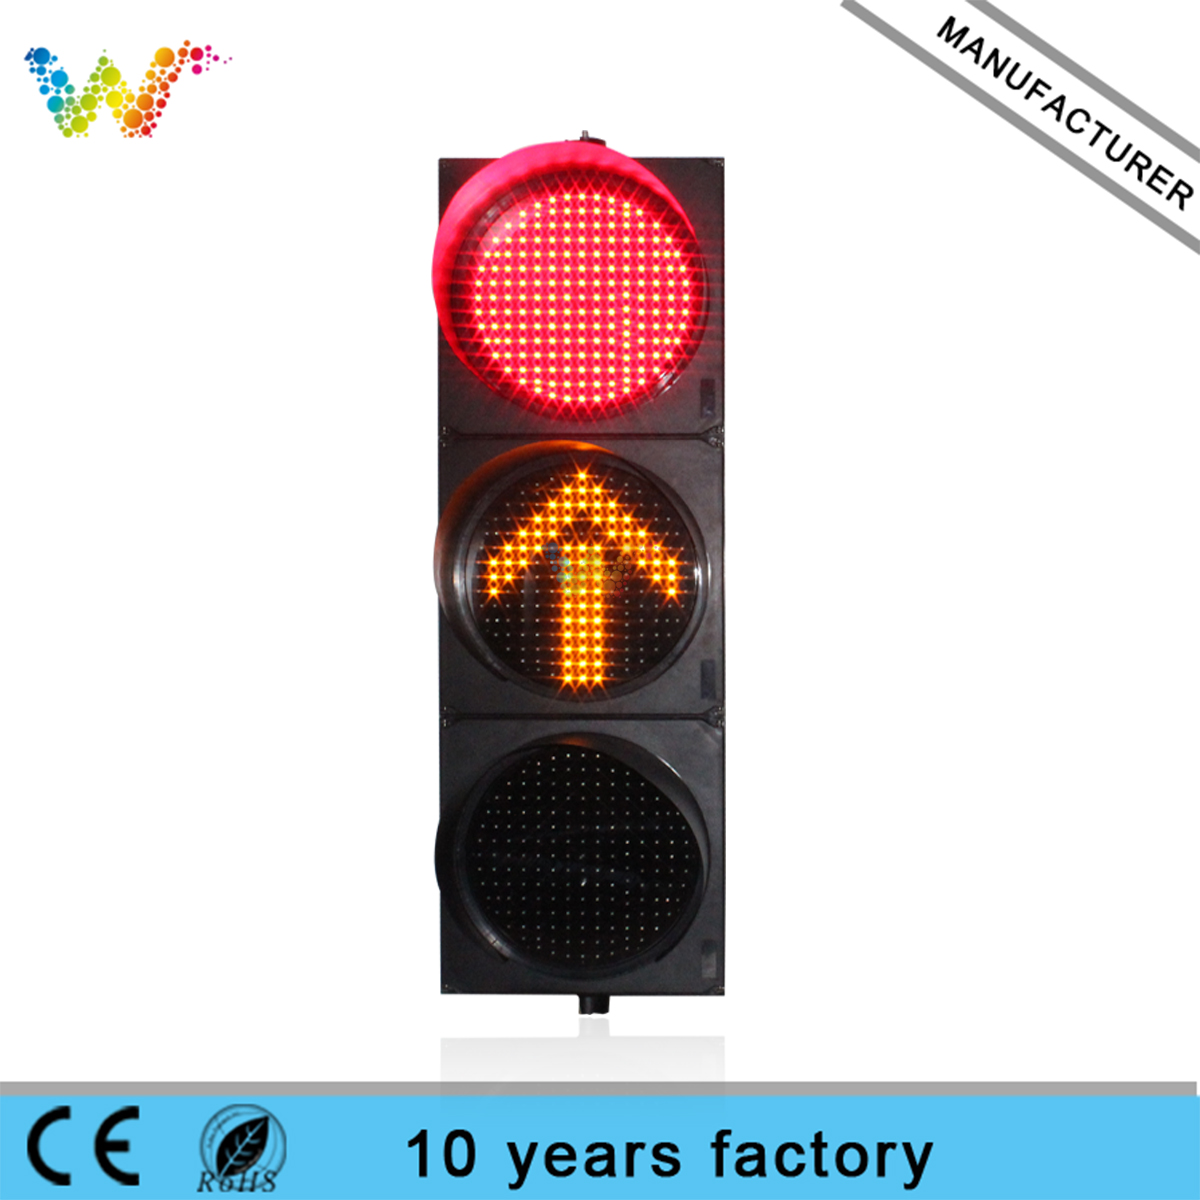 400mm red green yellow full ball arrow LED Traffic Light